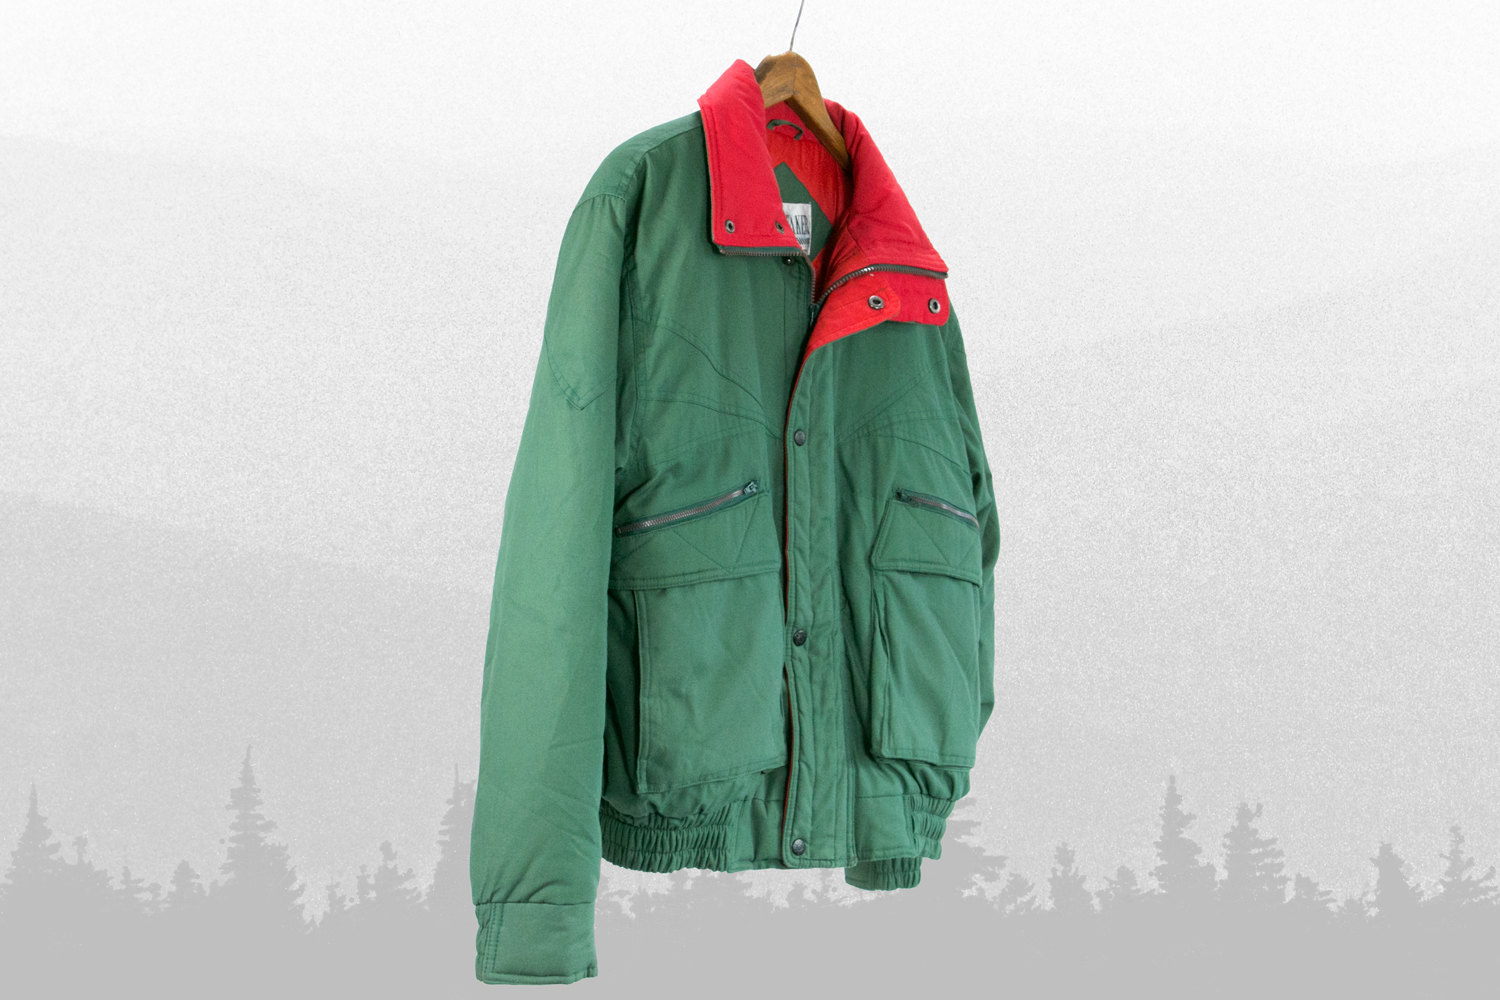 Vintage 1980's Country Jacket // Green and Red with Great Lines //  WINDBREAKER Brand // Men's Medium //  Retro, Hipster, Country Western